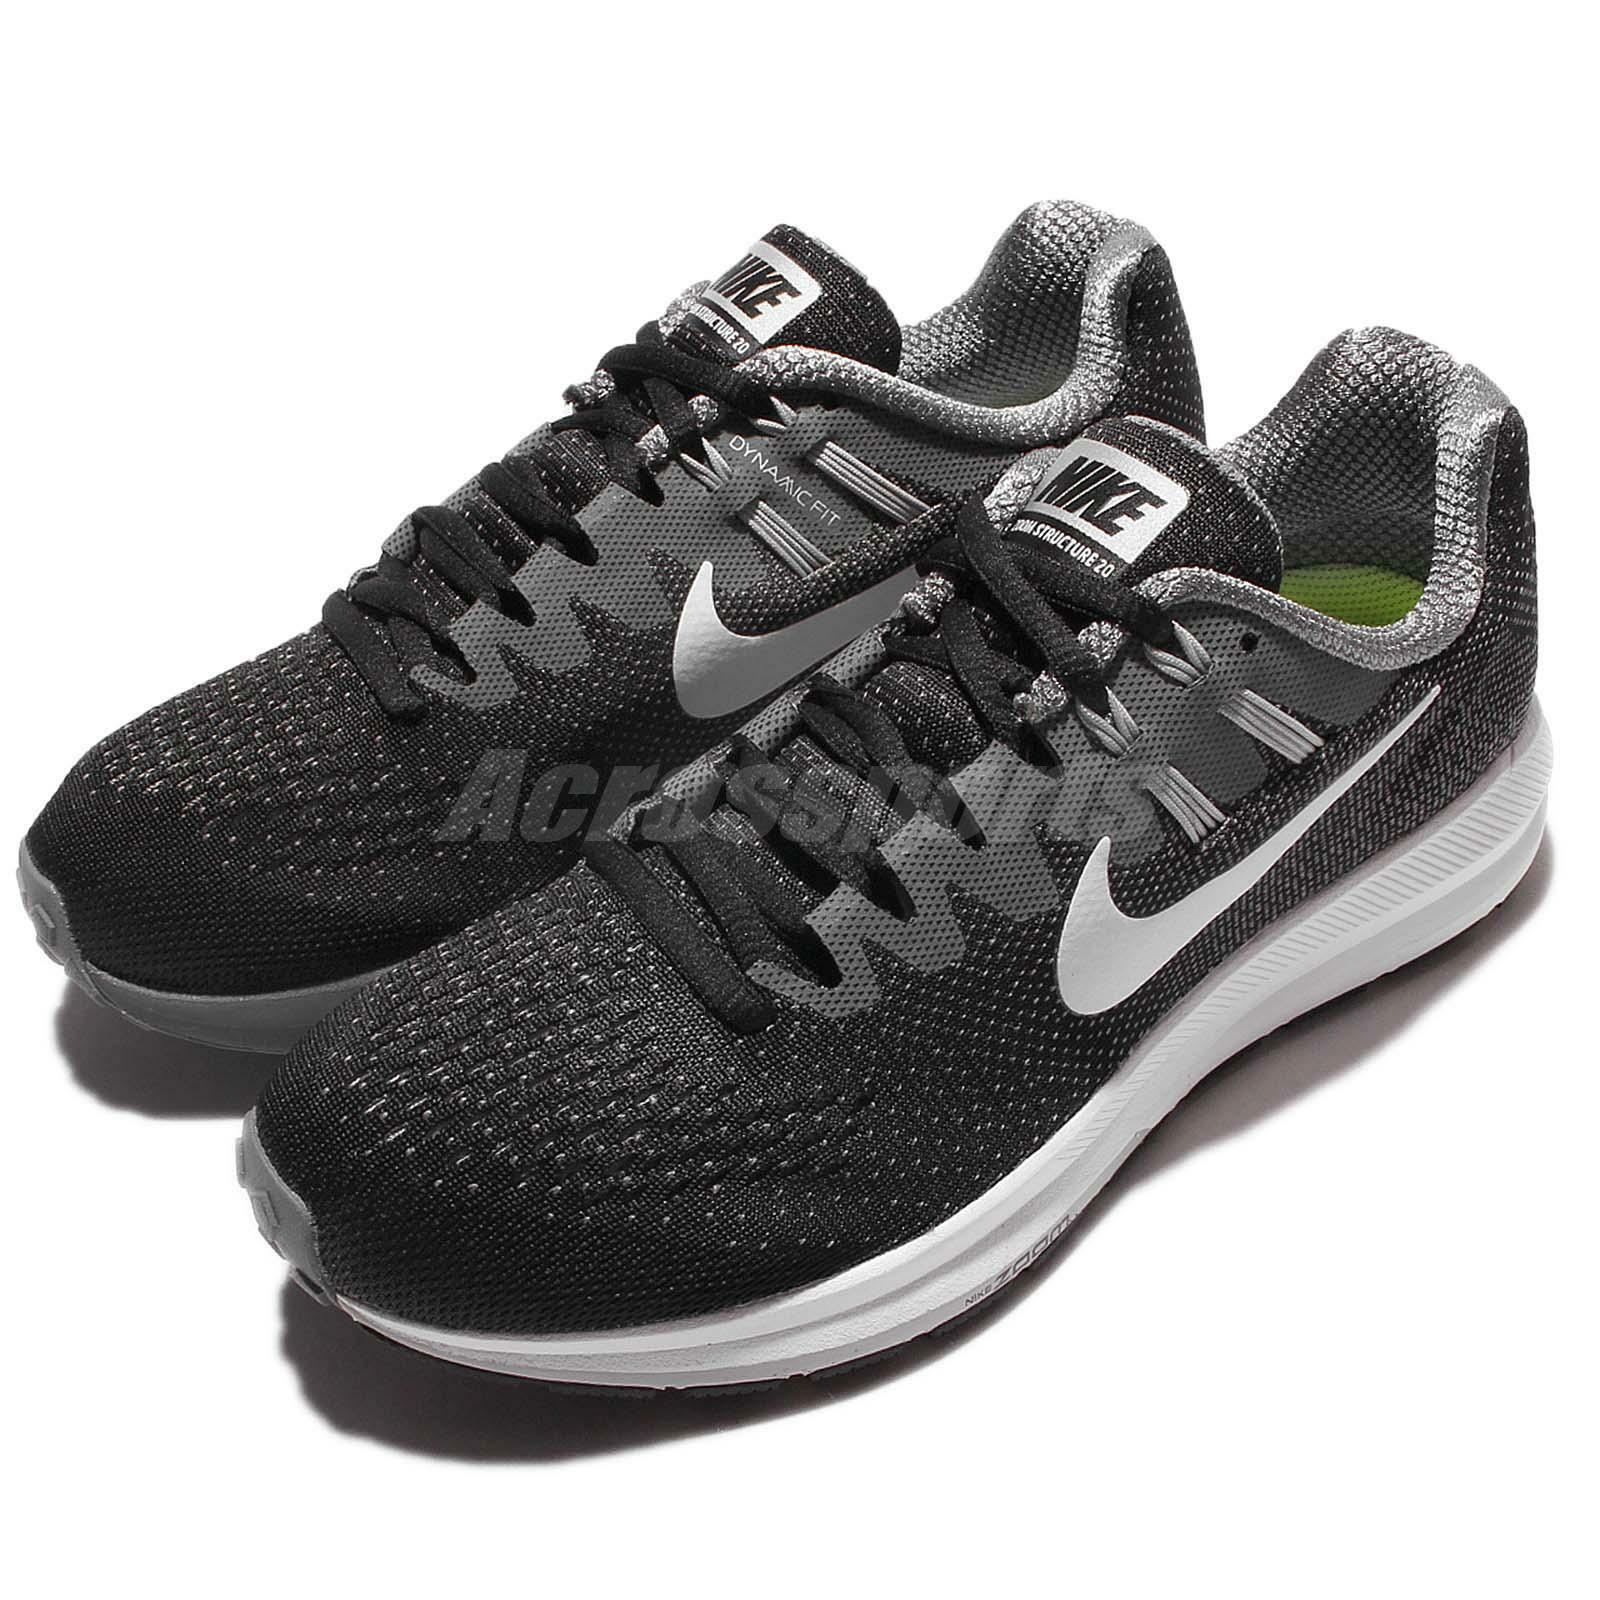 Nike Air Zoom Structure 20 Hombre Hombre 20 / Mujer Wmns Running Zapatos zapatillas Pick 1 93ad00